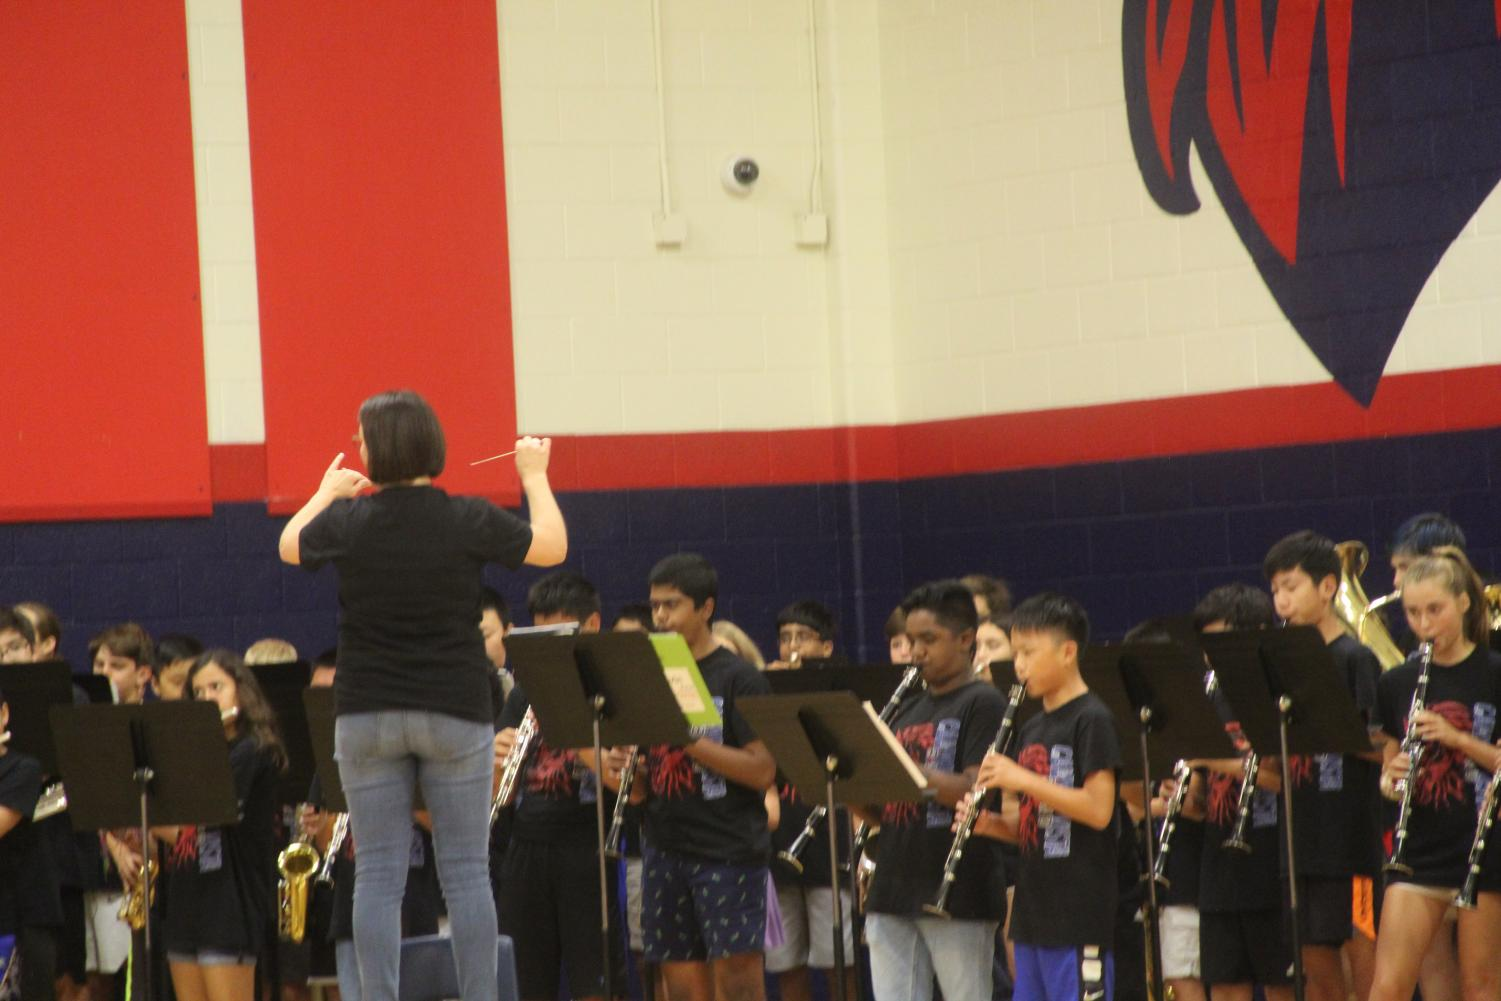 Honor+Band+wows+us+again+with+their+amazing+musical+talent